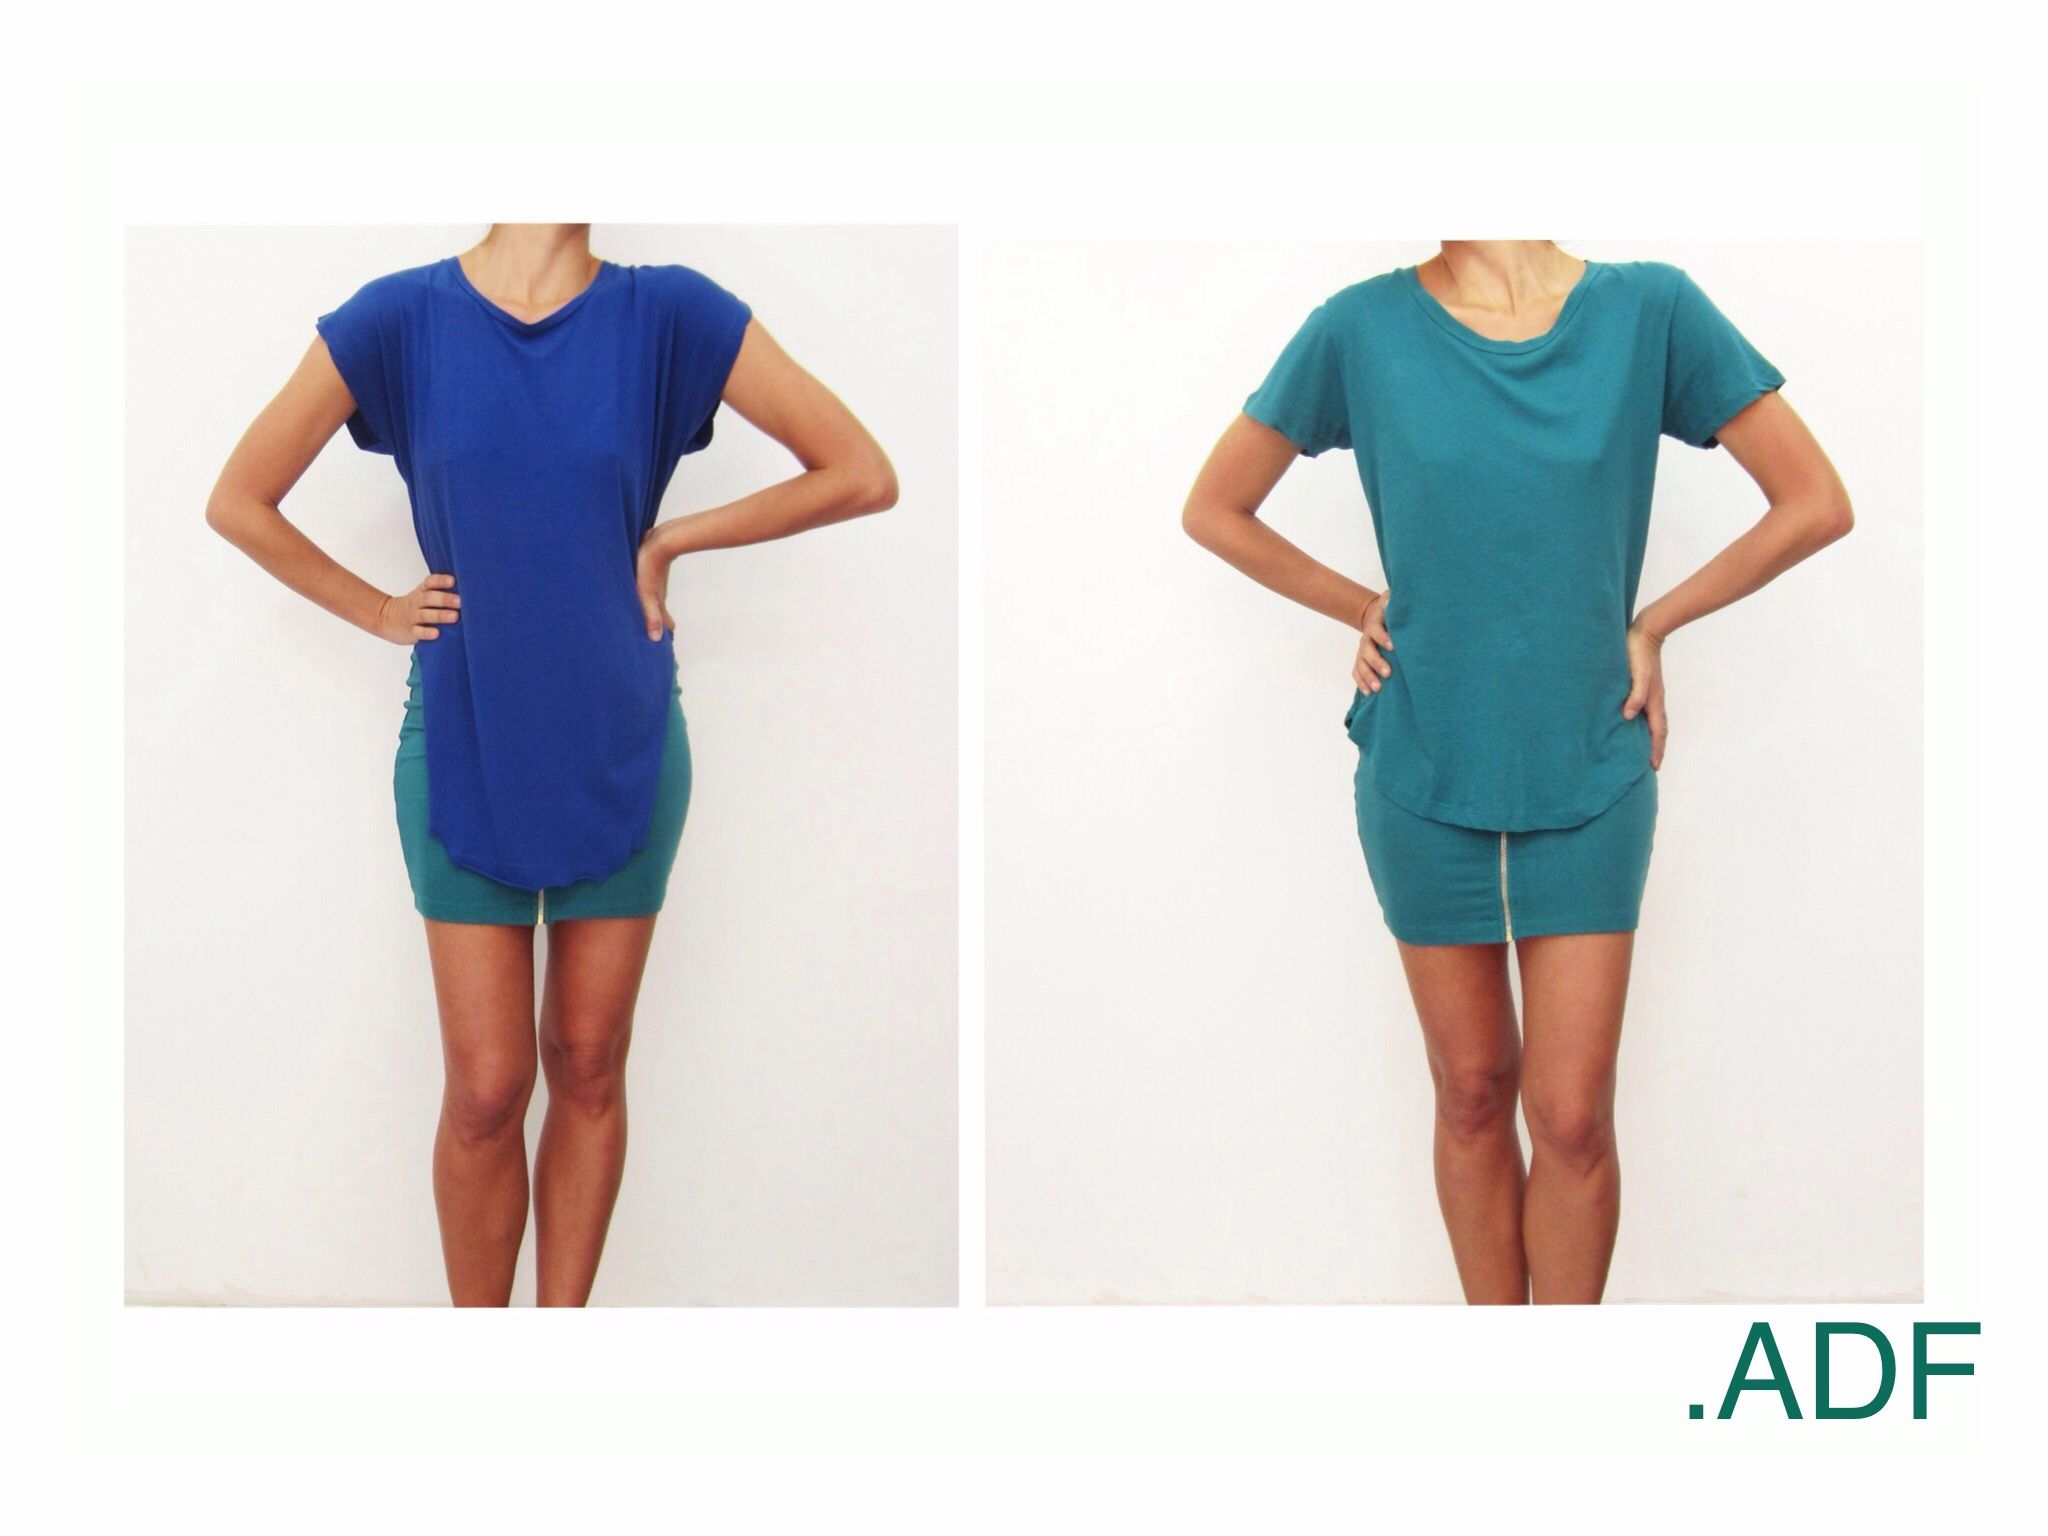 Adf fall for women adf concept store adf women pinterest